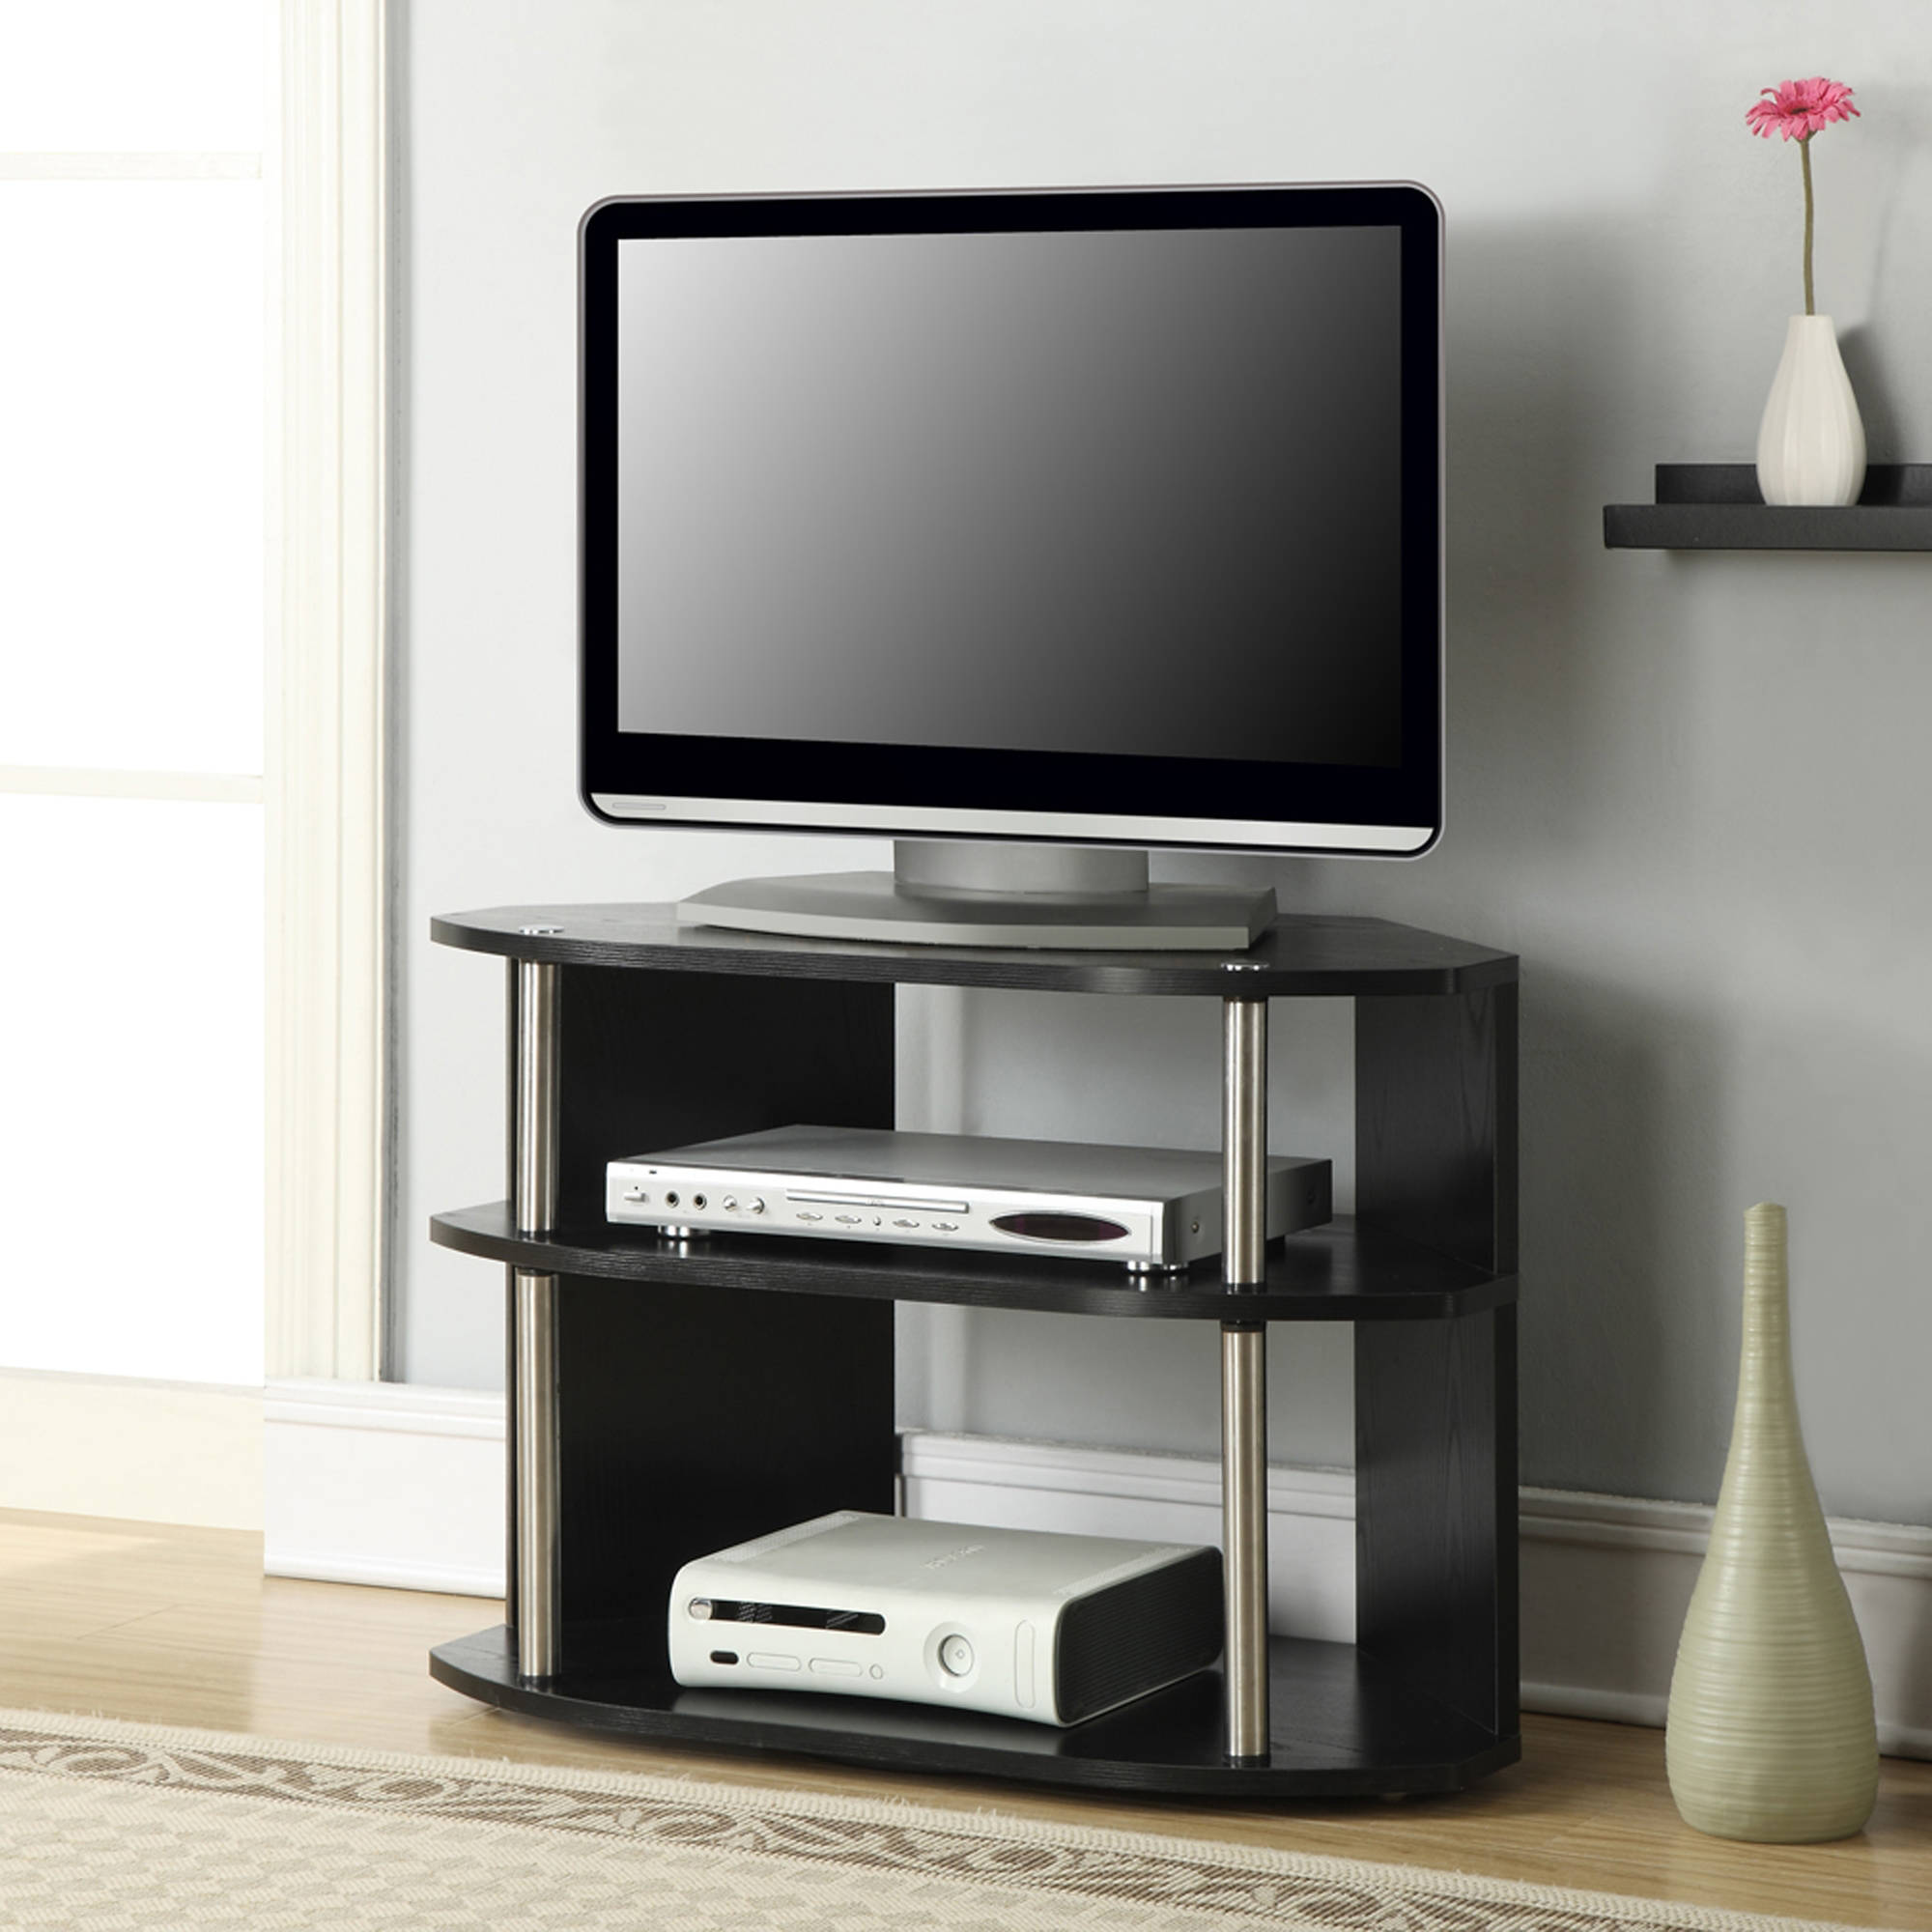 Designs2Go Swivel Black TV Stand for TVs up to 32""